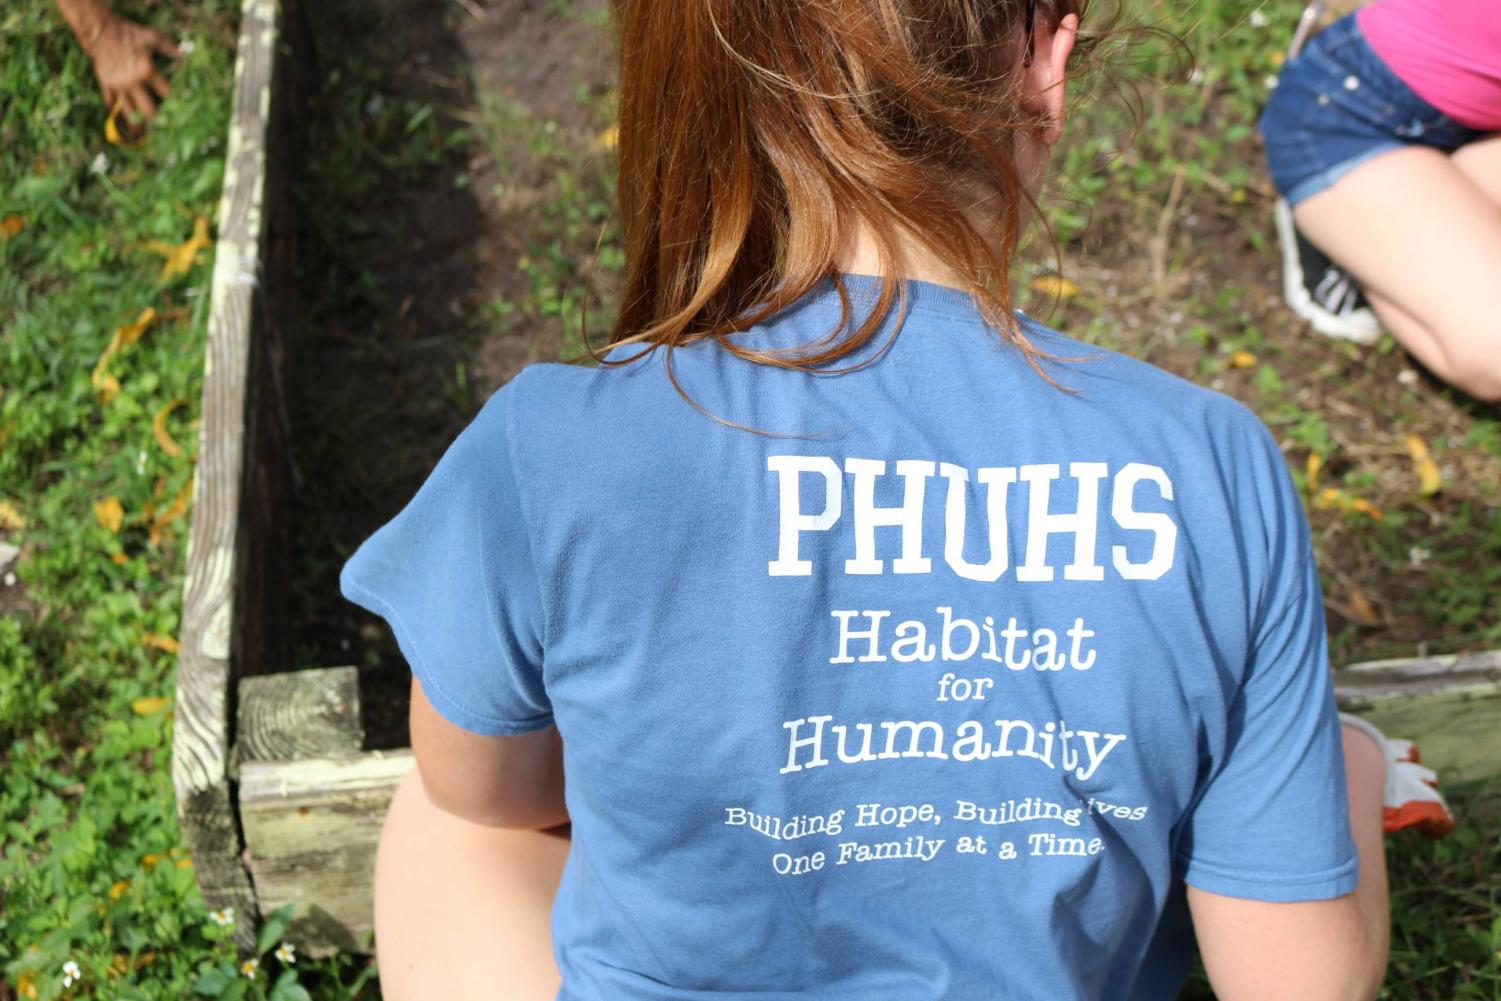 Habitat+for+Humanity+is+a+club+at+PHUHS+that+attends+several+volunteering+events+such+as+this+ReStore+garden.